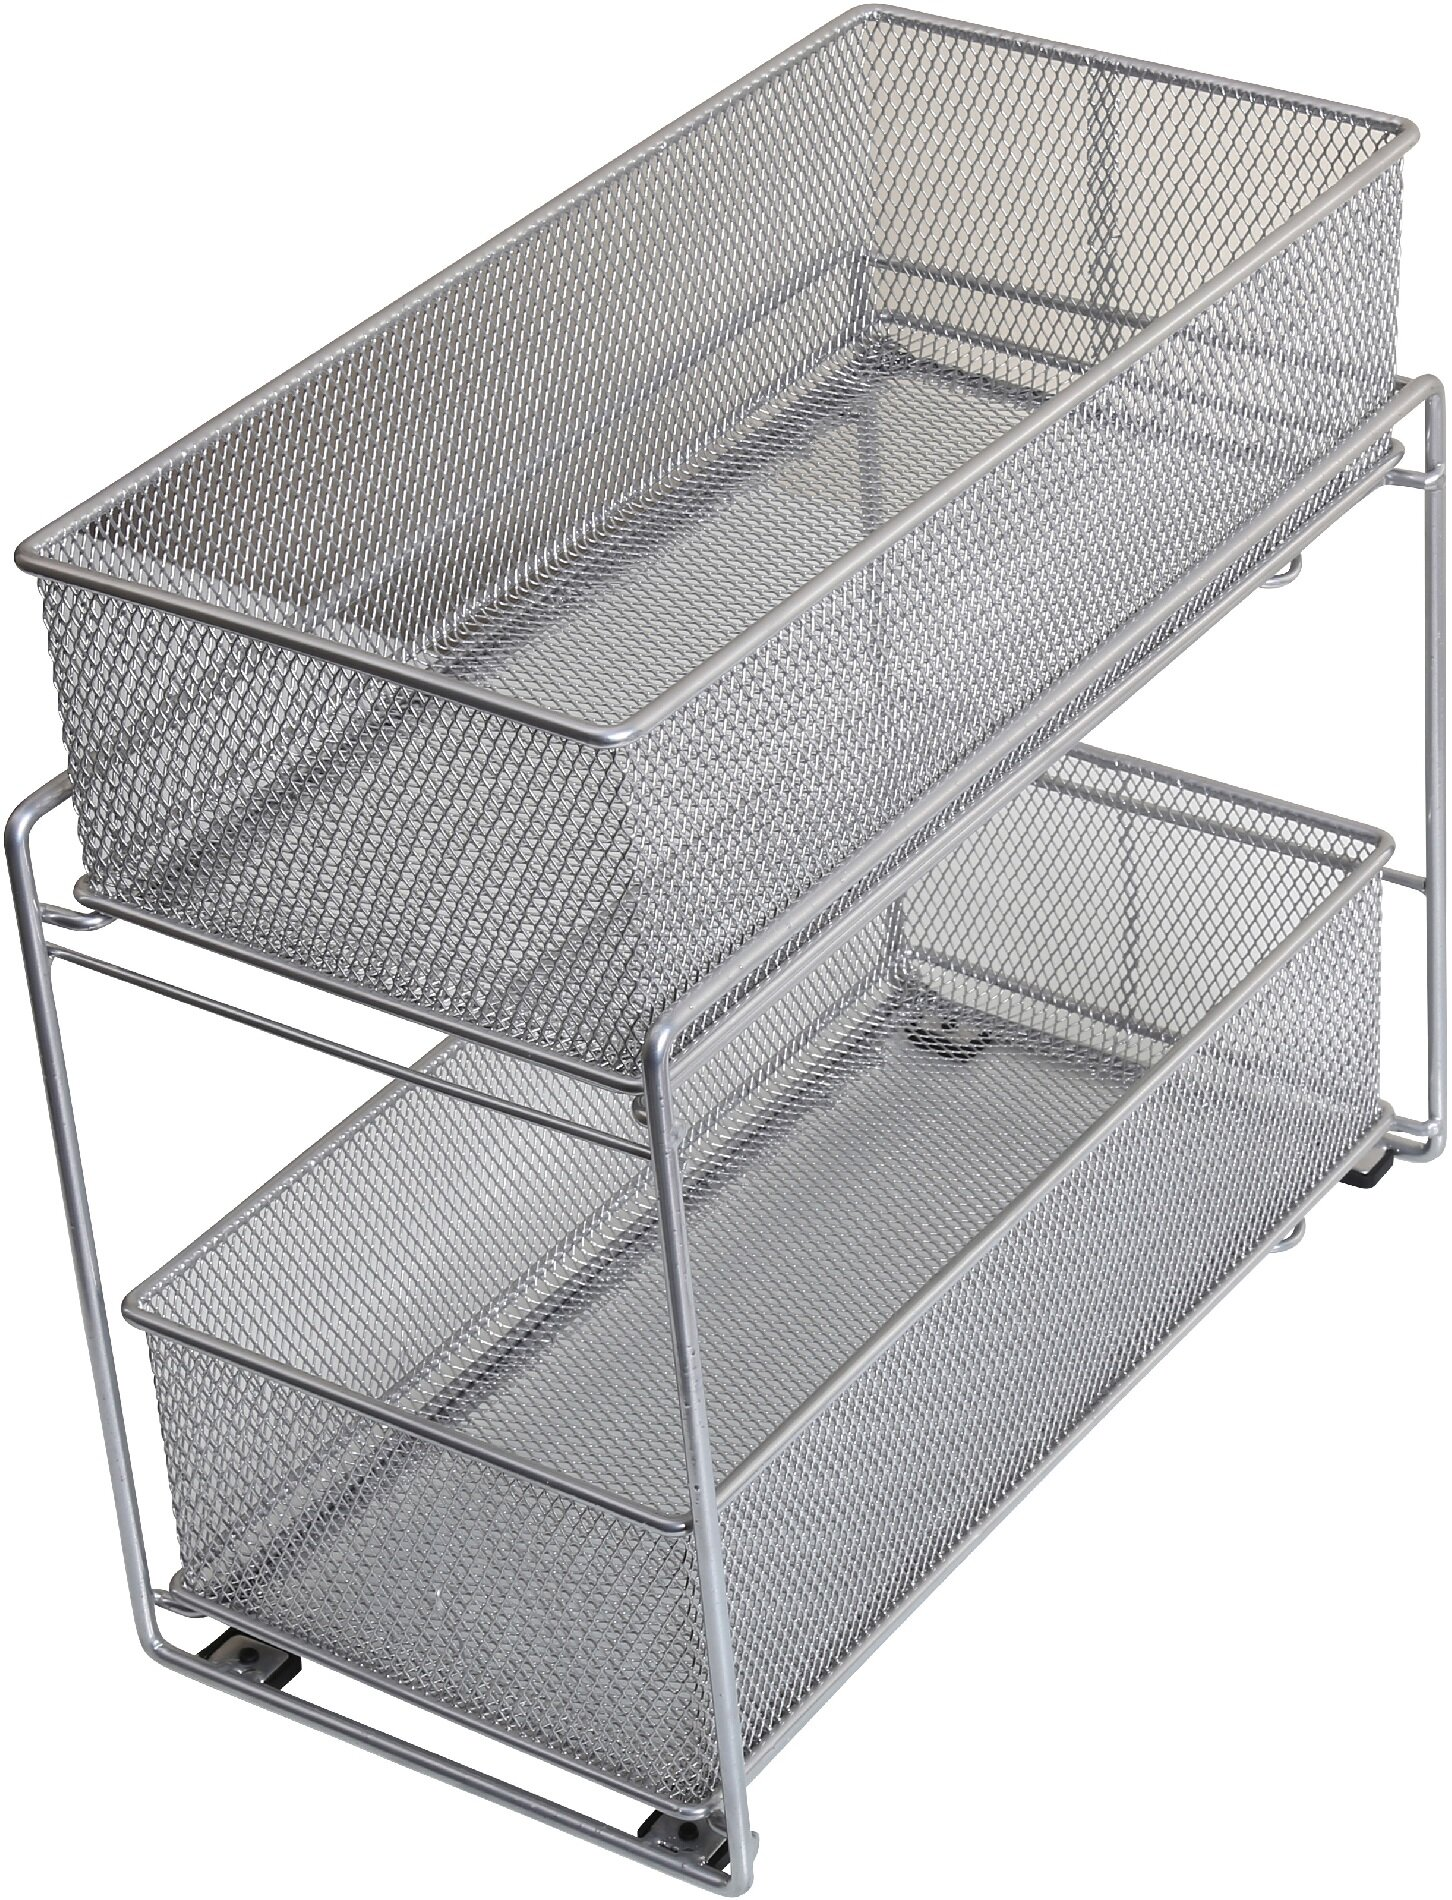 Charmant YBM Home 2 Tier Mesh Roll Out Cabinet Organizer Drawer U0026 Reviews | Wayfair